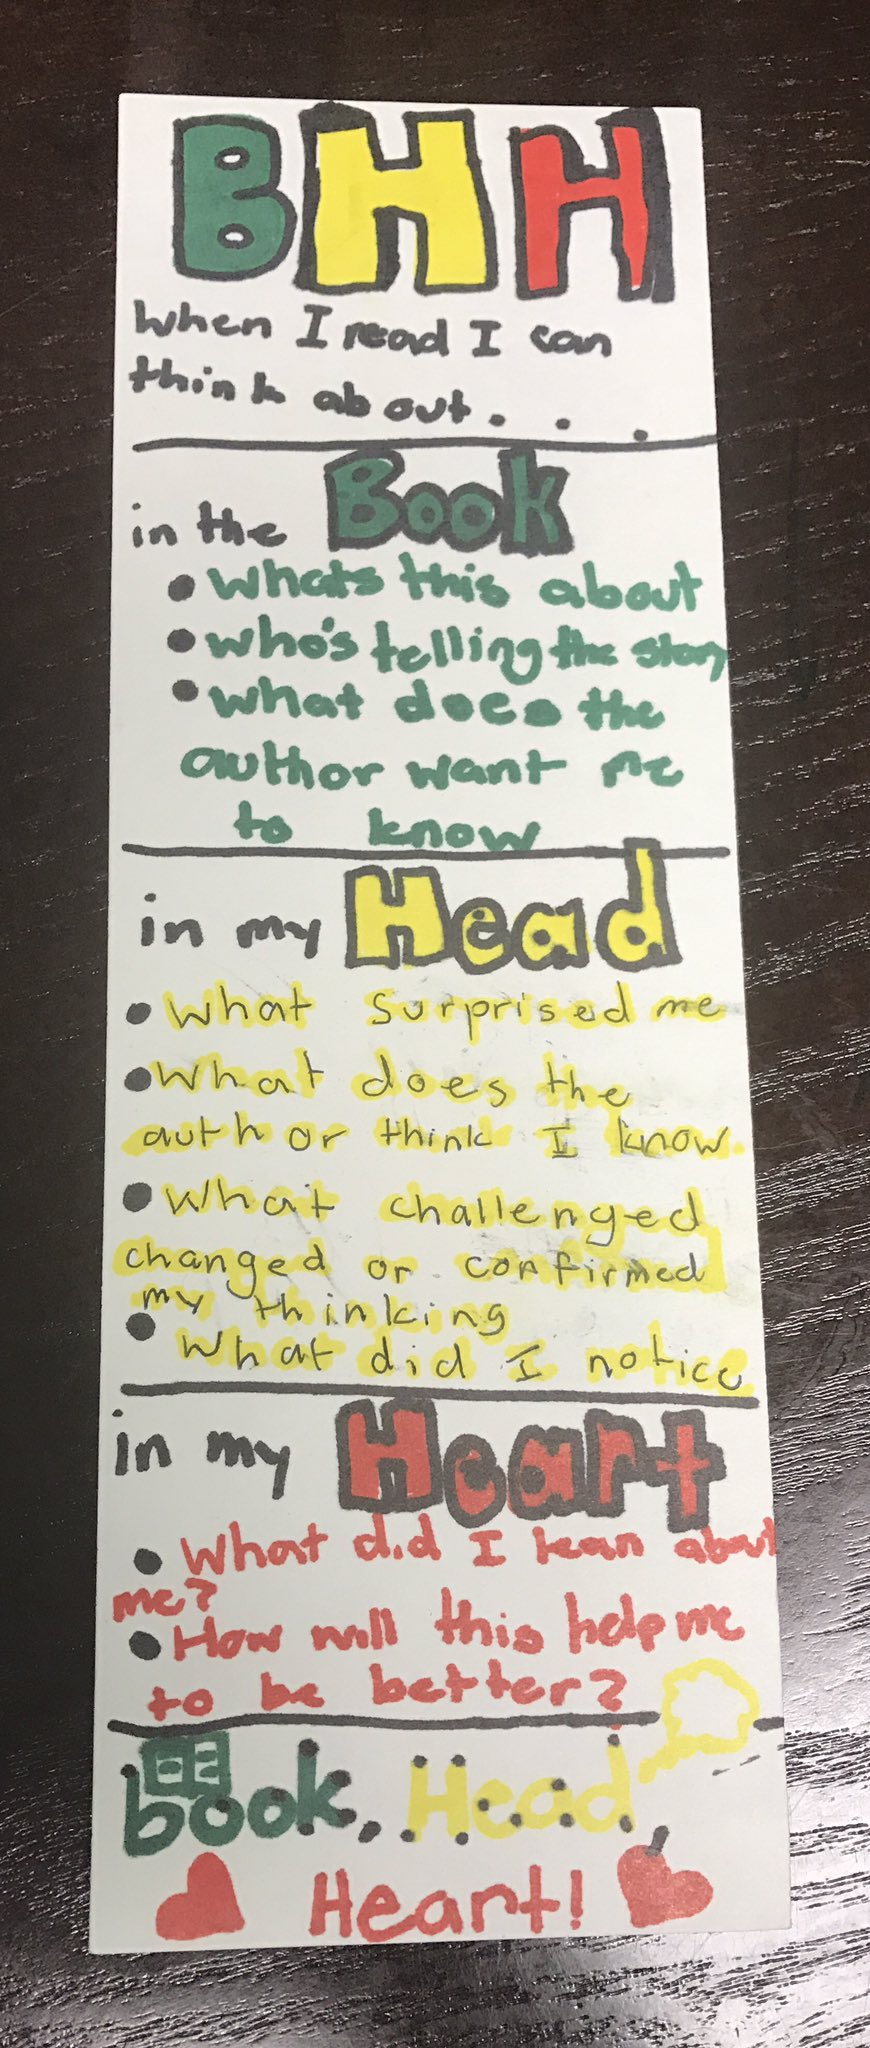 """Ss created """"BHH"""" strategy bookmark!!! #DIYLiteracy #DisruptingThinking #LESGeeenRoom https://t.co/bihvdVgTrA"""